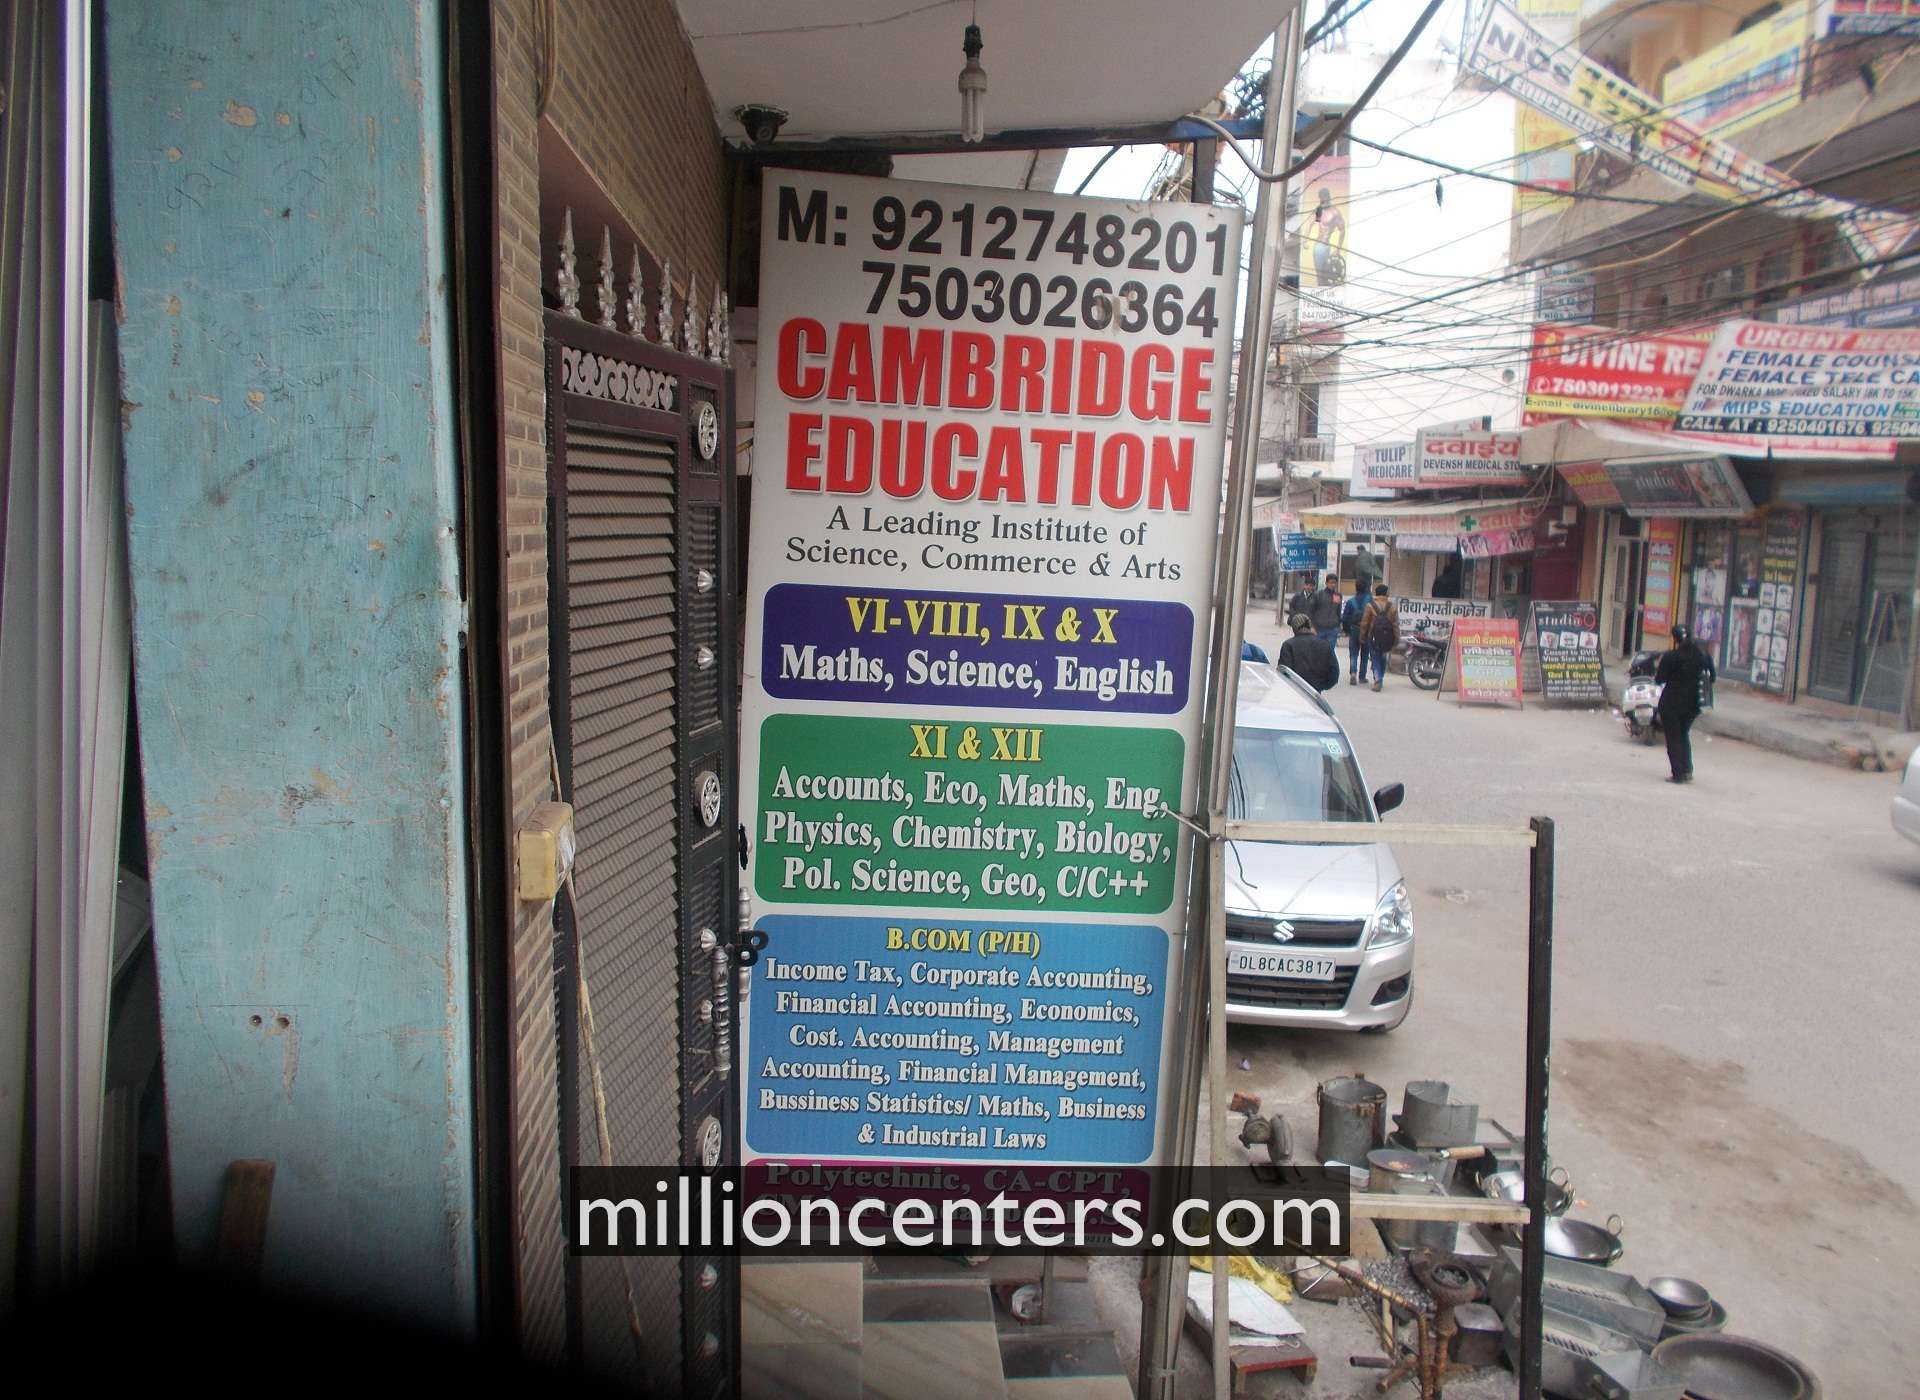 CAMBRIDGE EDUCATION in Uttam Nagar